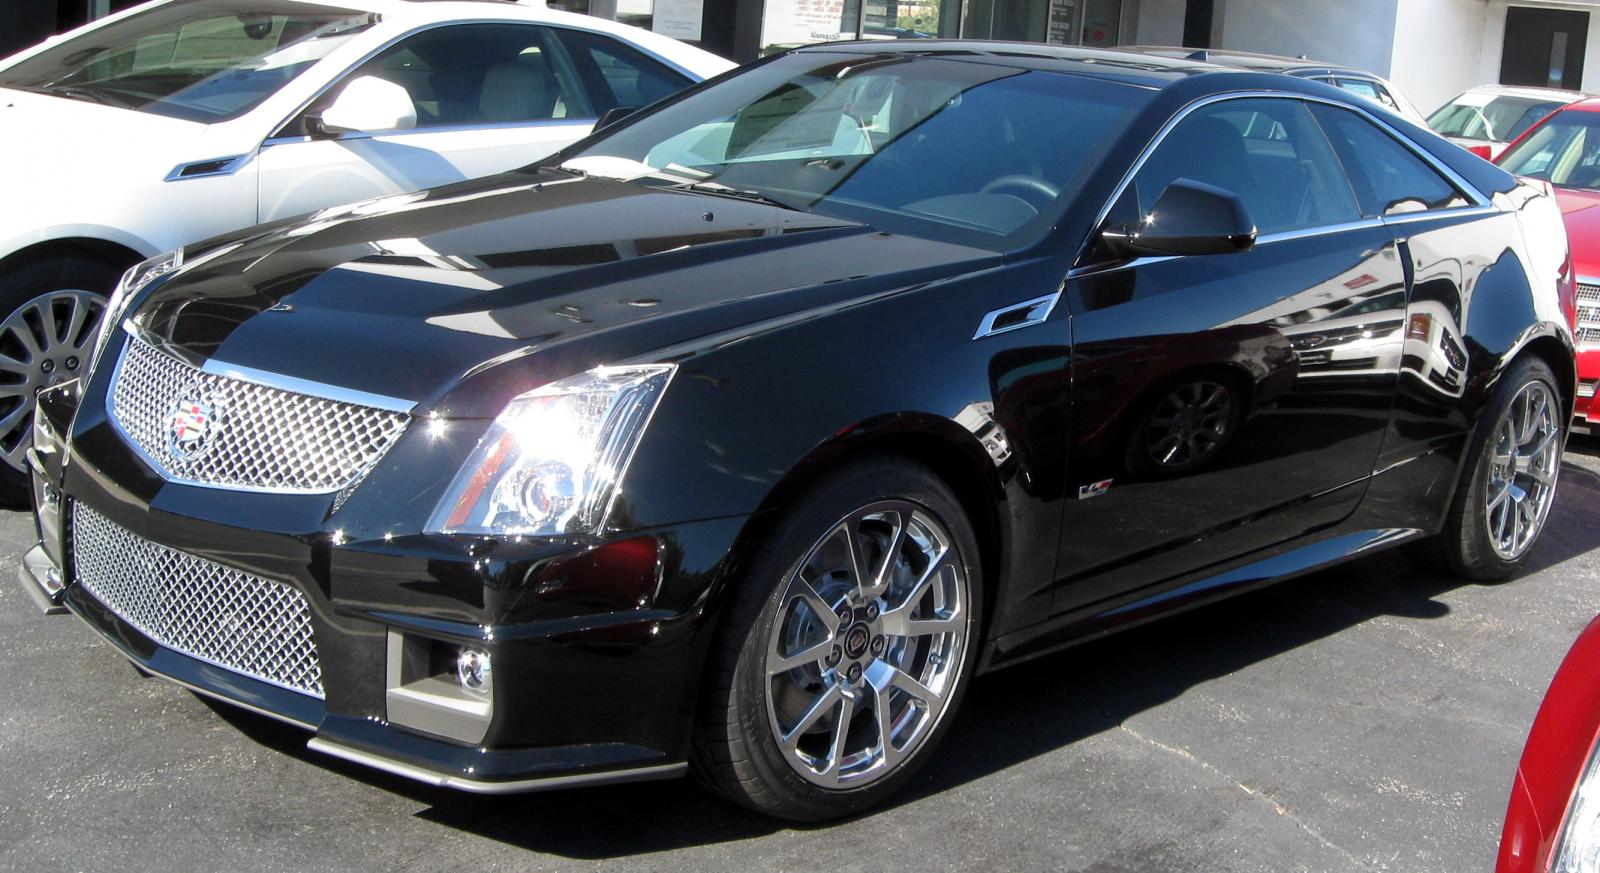 2007 cadillac cts v information and photos zombiedrive. Black Bedroom Furniture Sets. Home Design Ideas